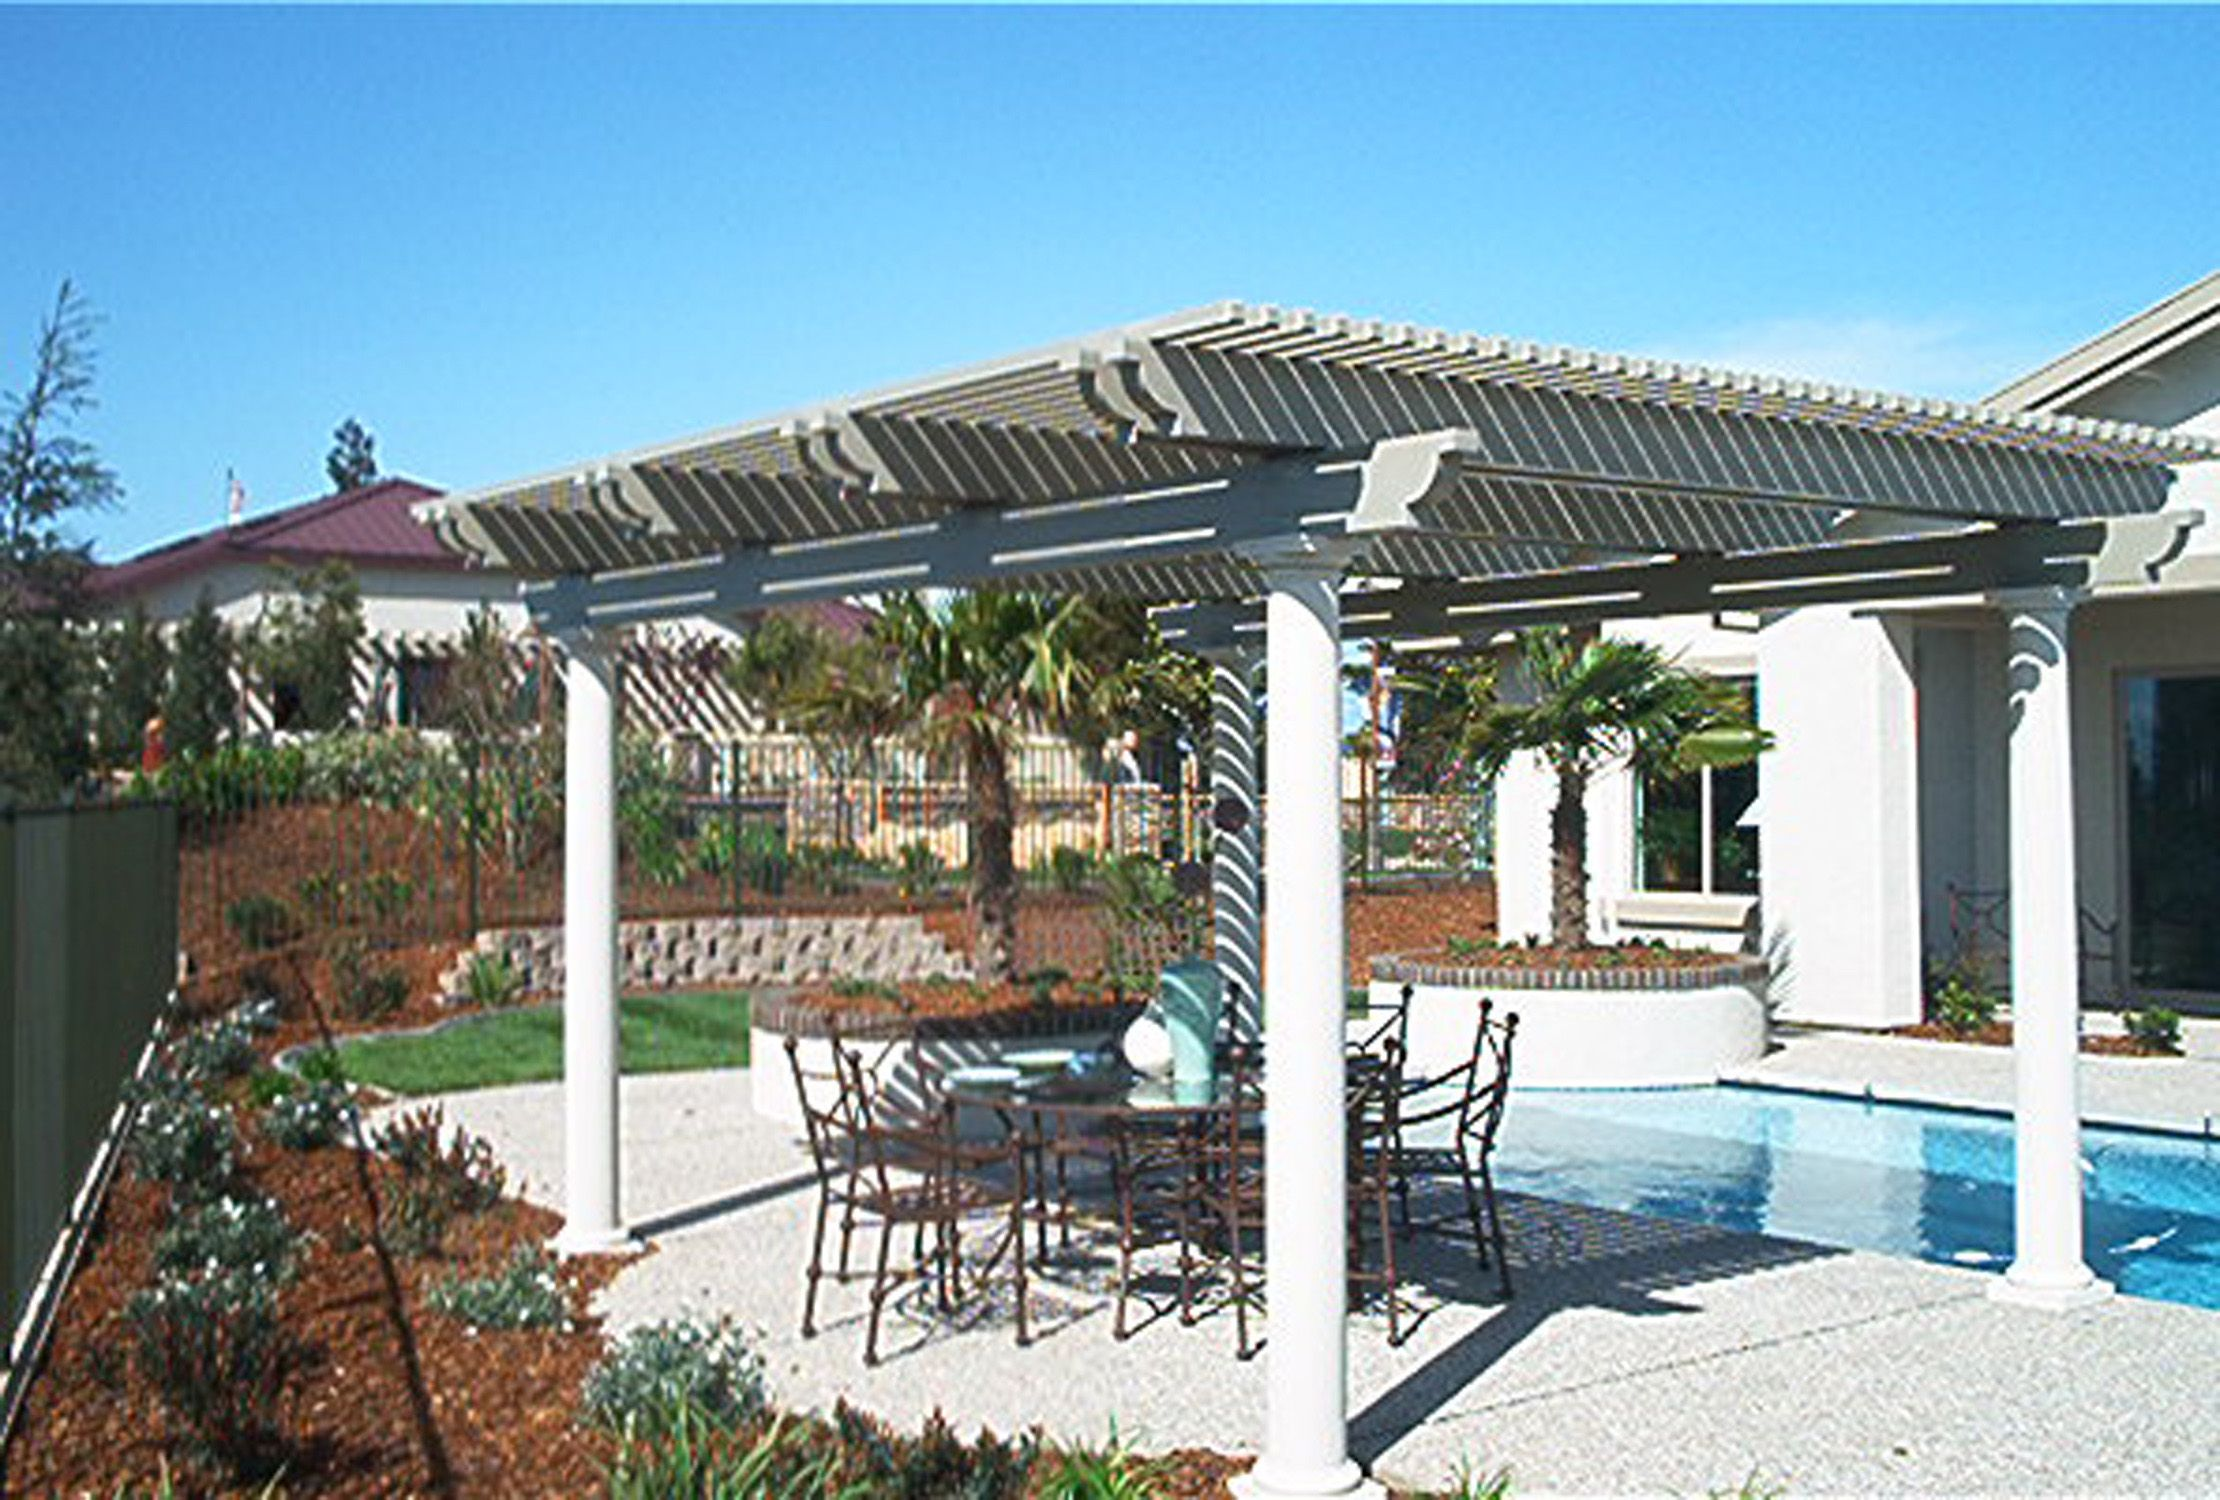 Wholesale Patio Kits is a nationwide supplier of DIY